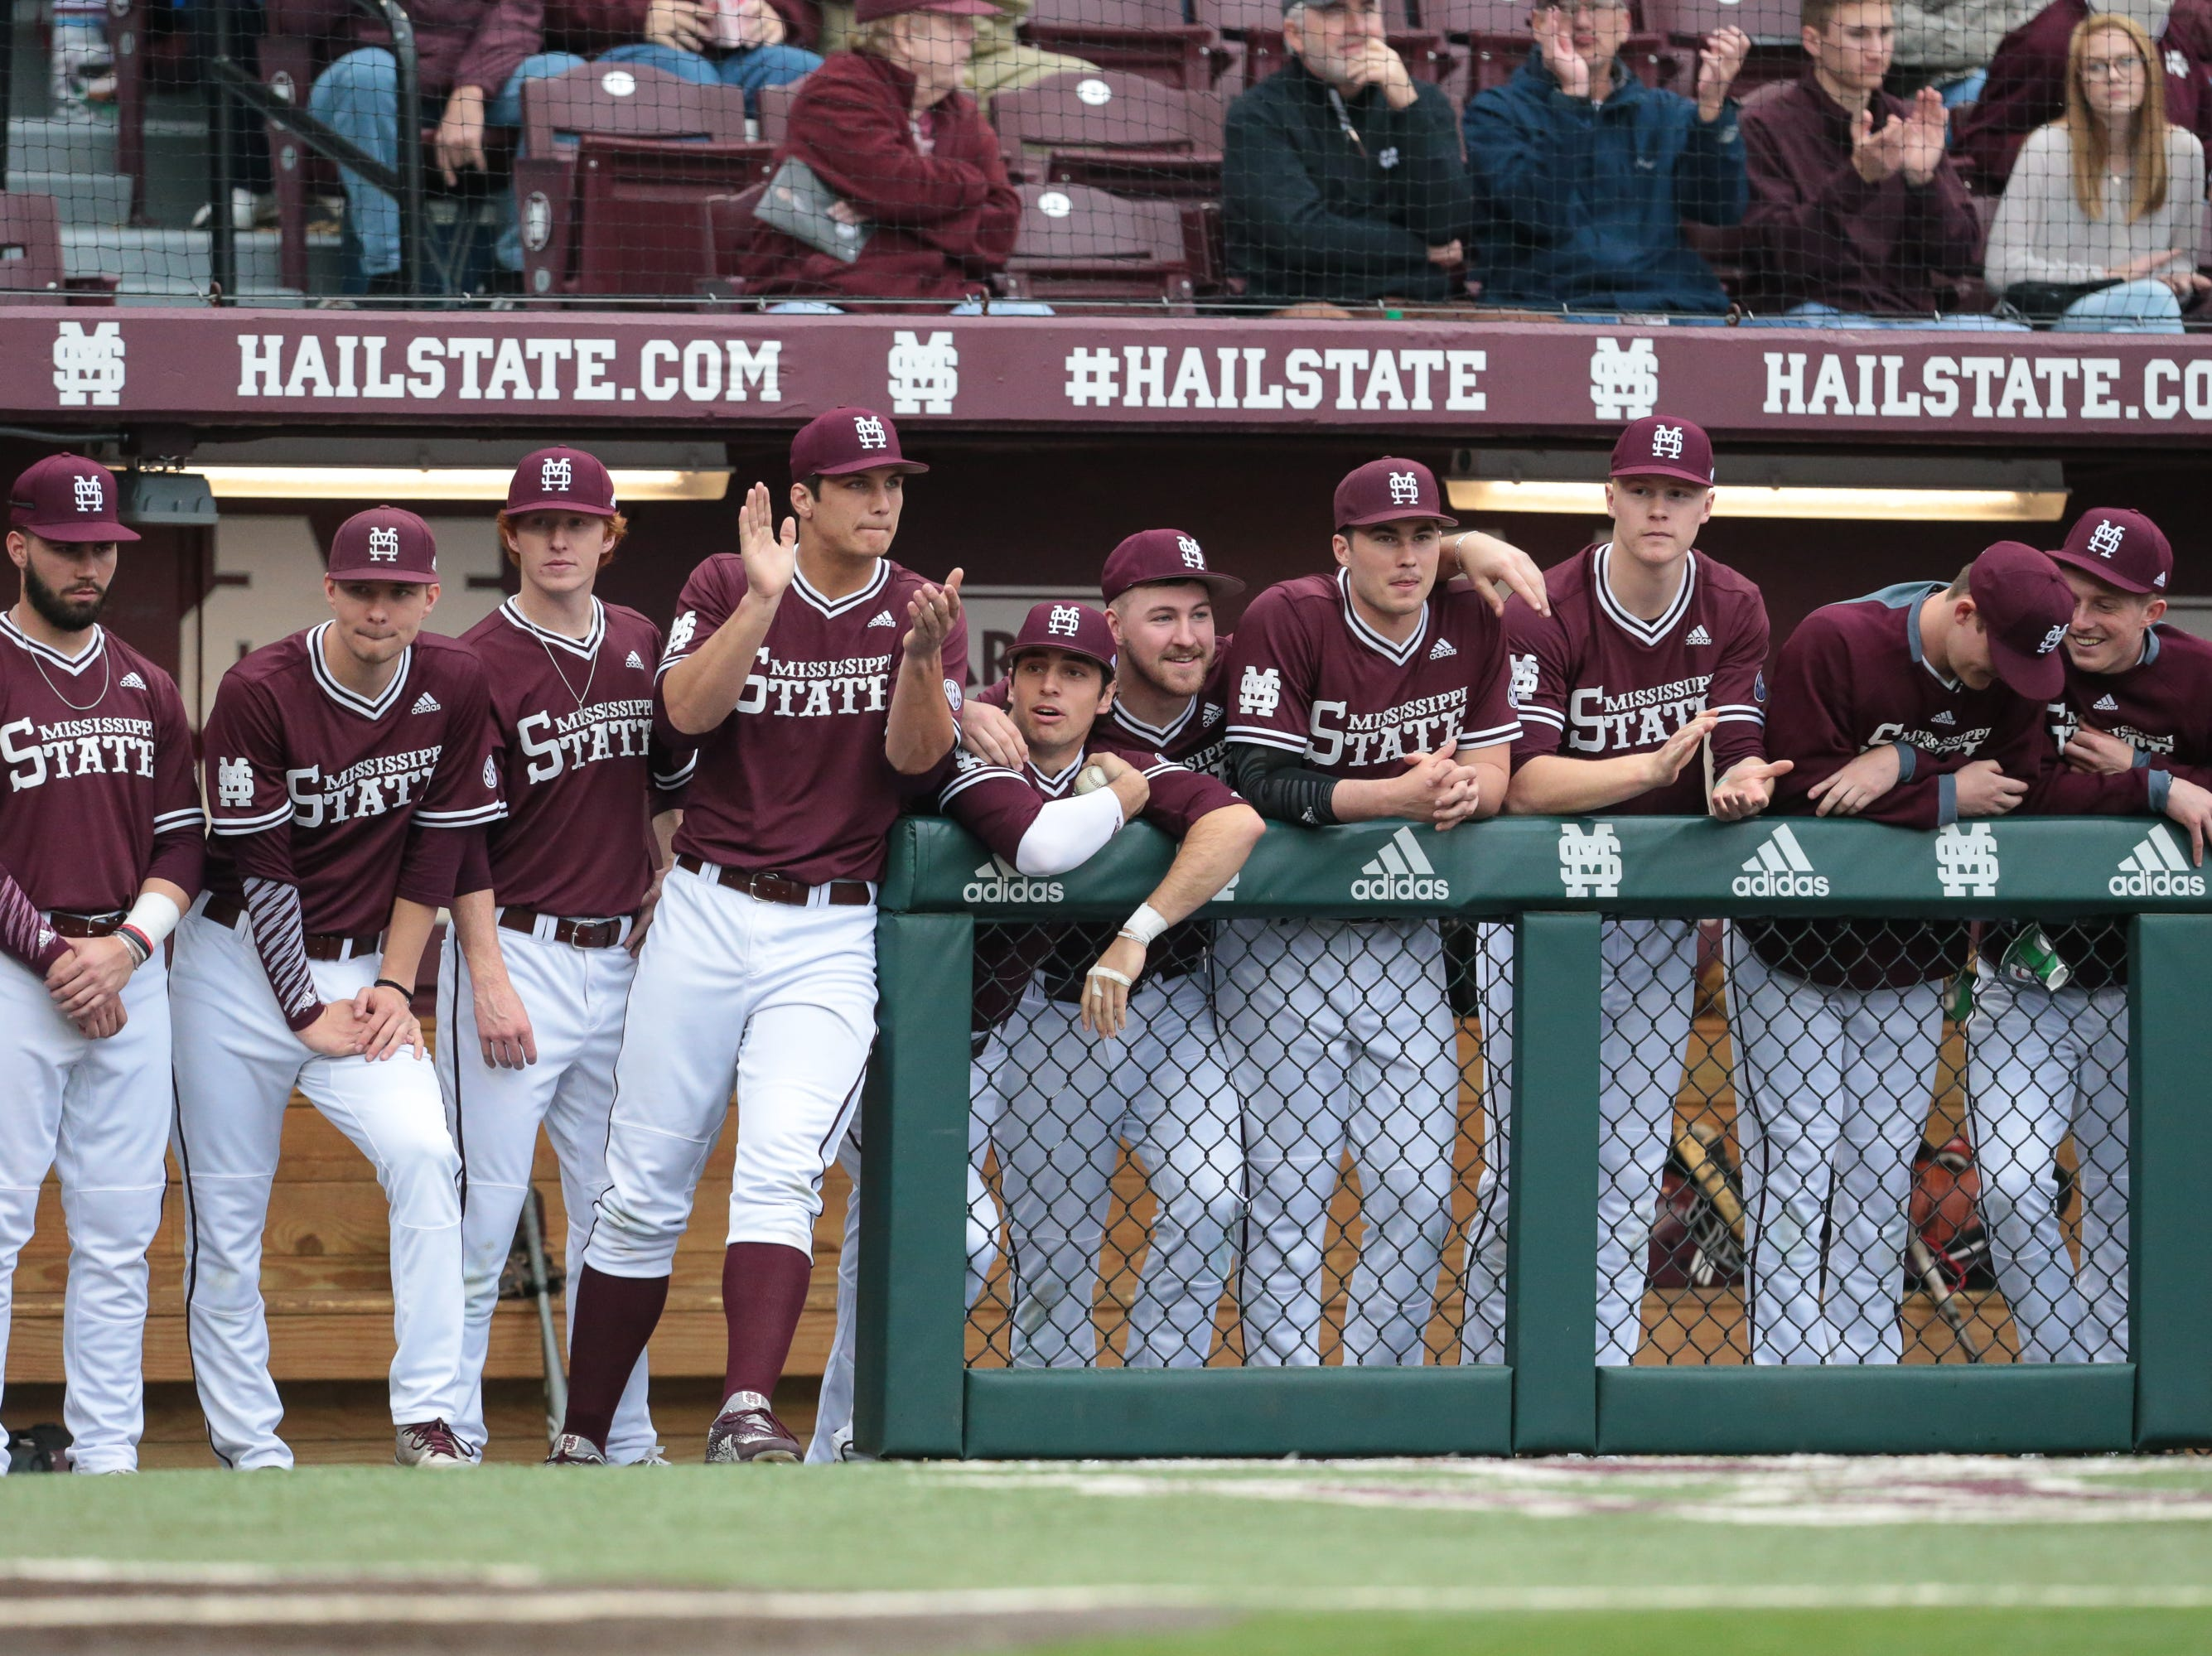 MSU players cheer for their teammates in the first inning. Mississippi State opened the 2019 baseball season against Youngstown State on Friday, February 15, 2019. Photo by Keith Warren